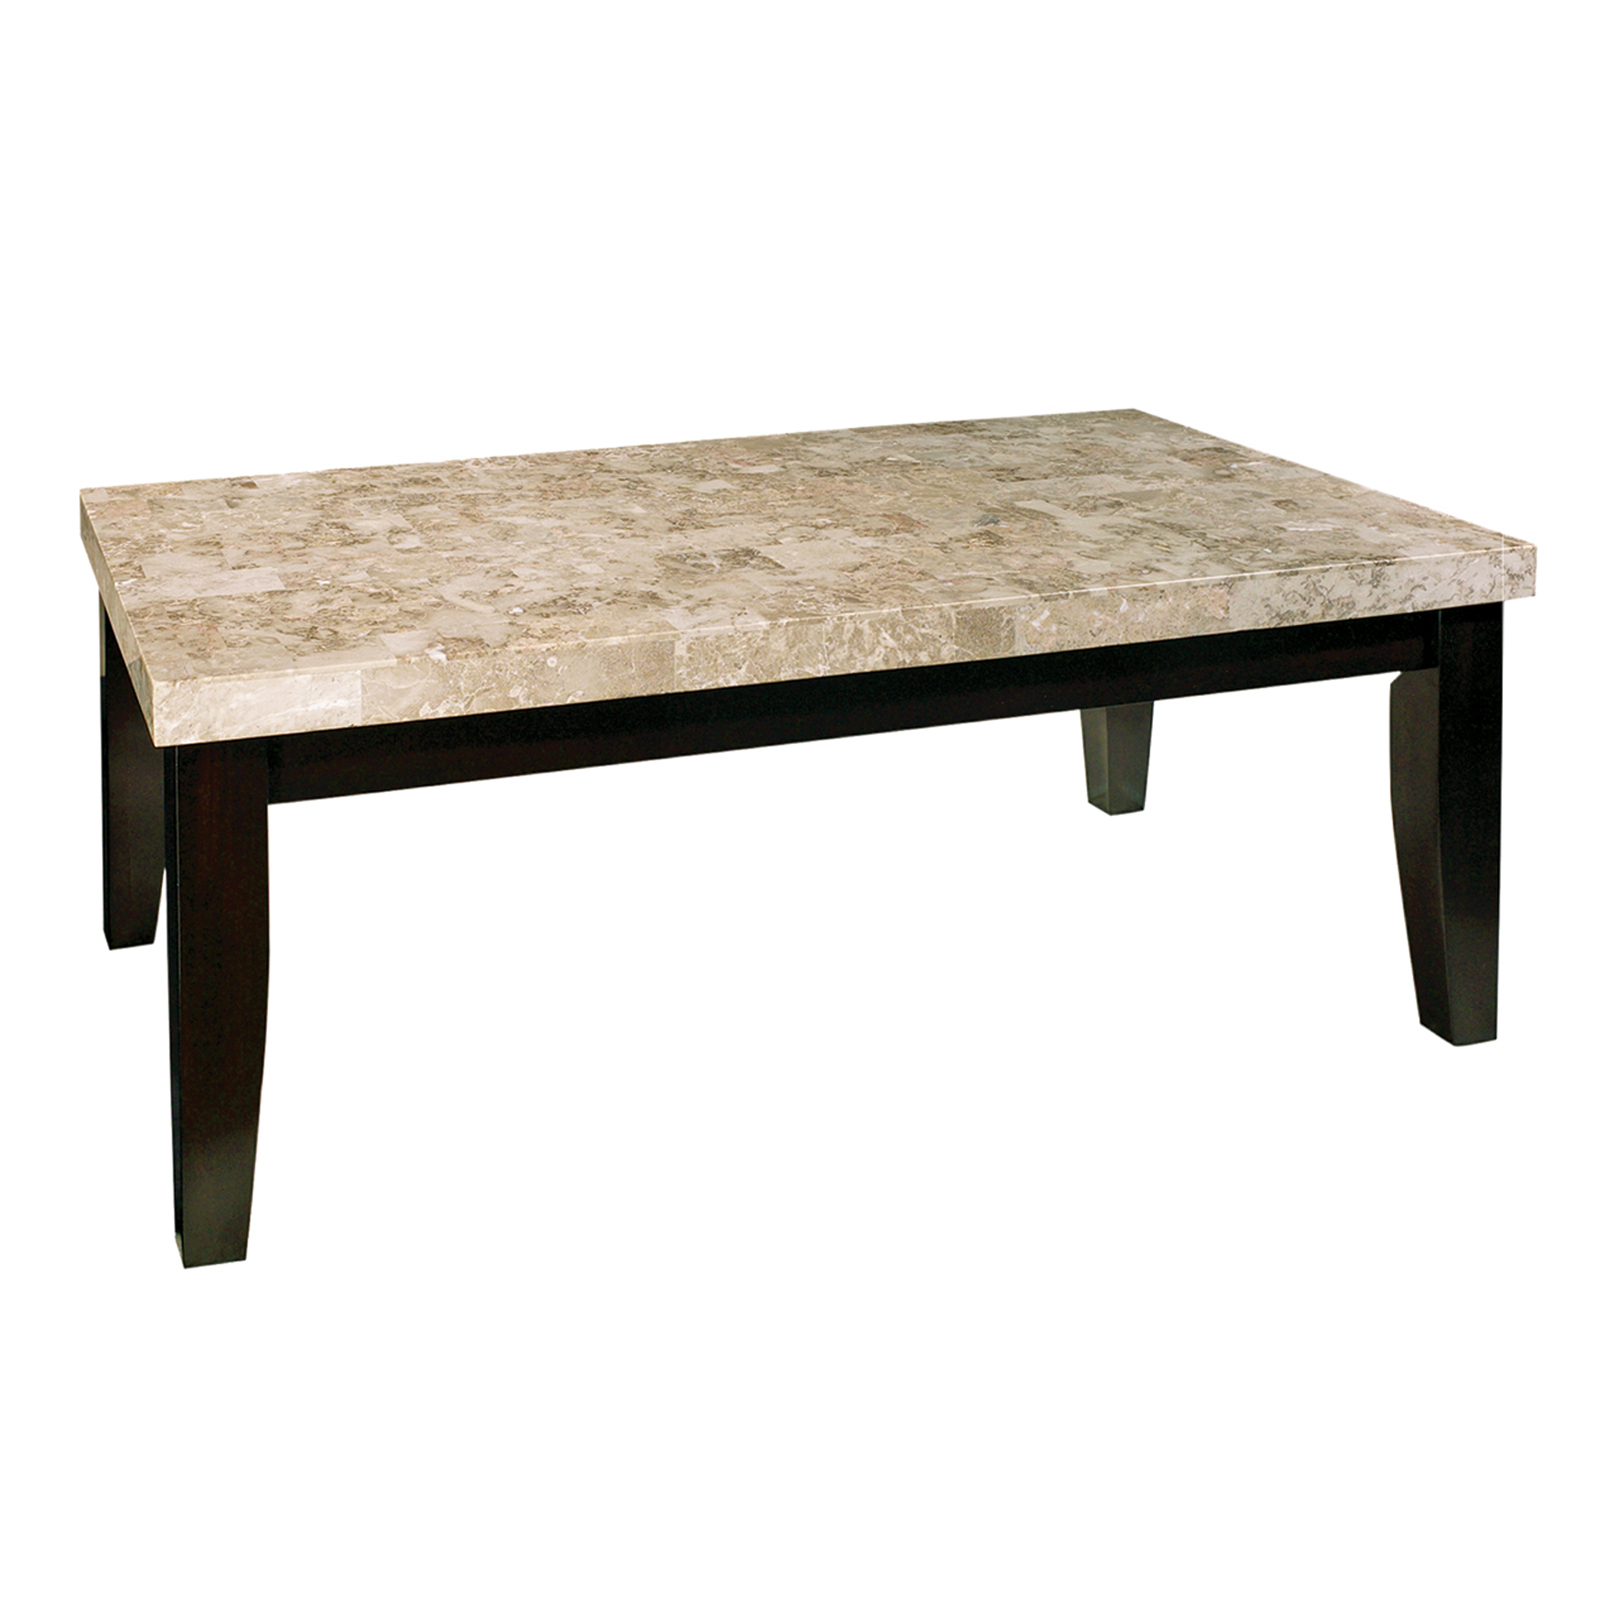 Master Coffee tables with marble tops